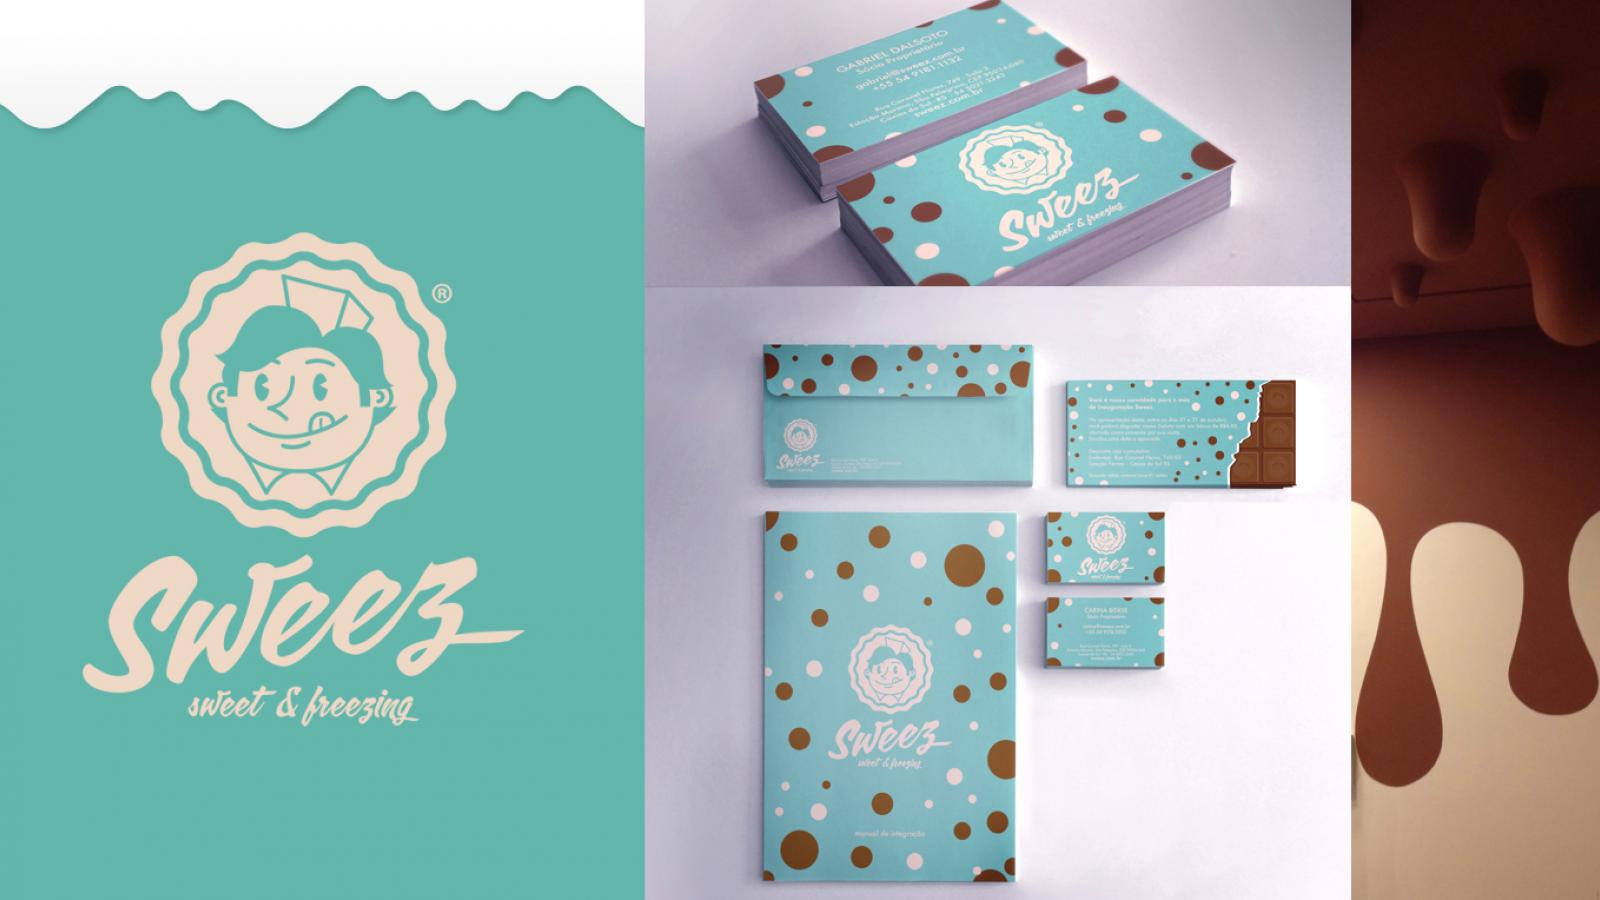 Sweez Branding and Packaging Identity by Maurício Cardoso